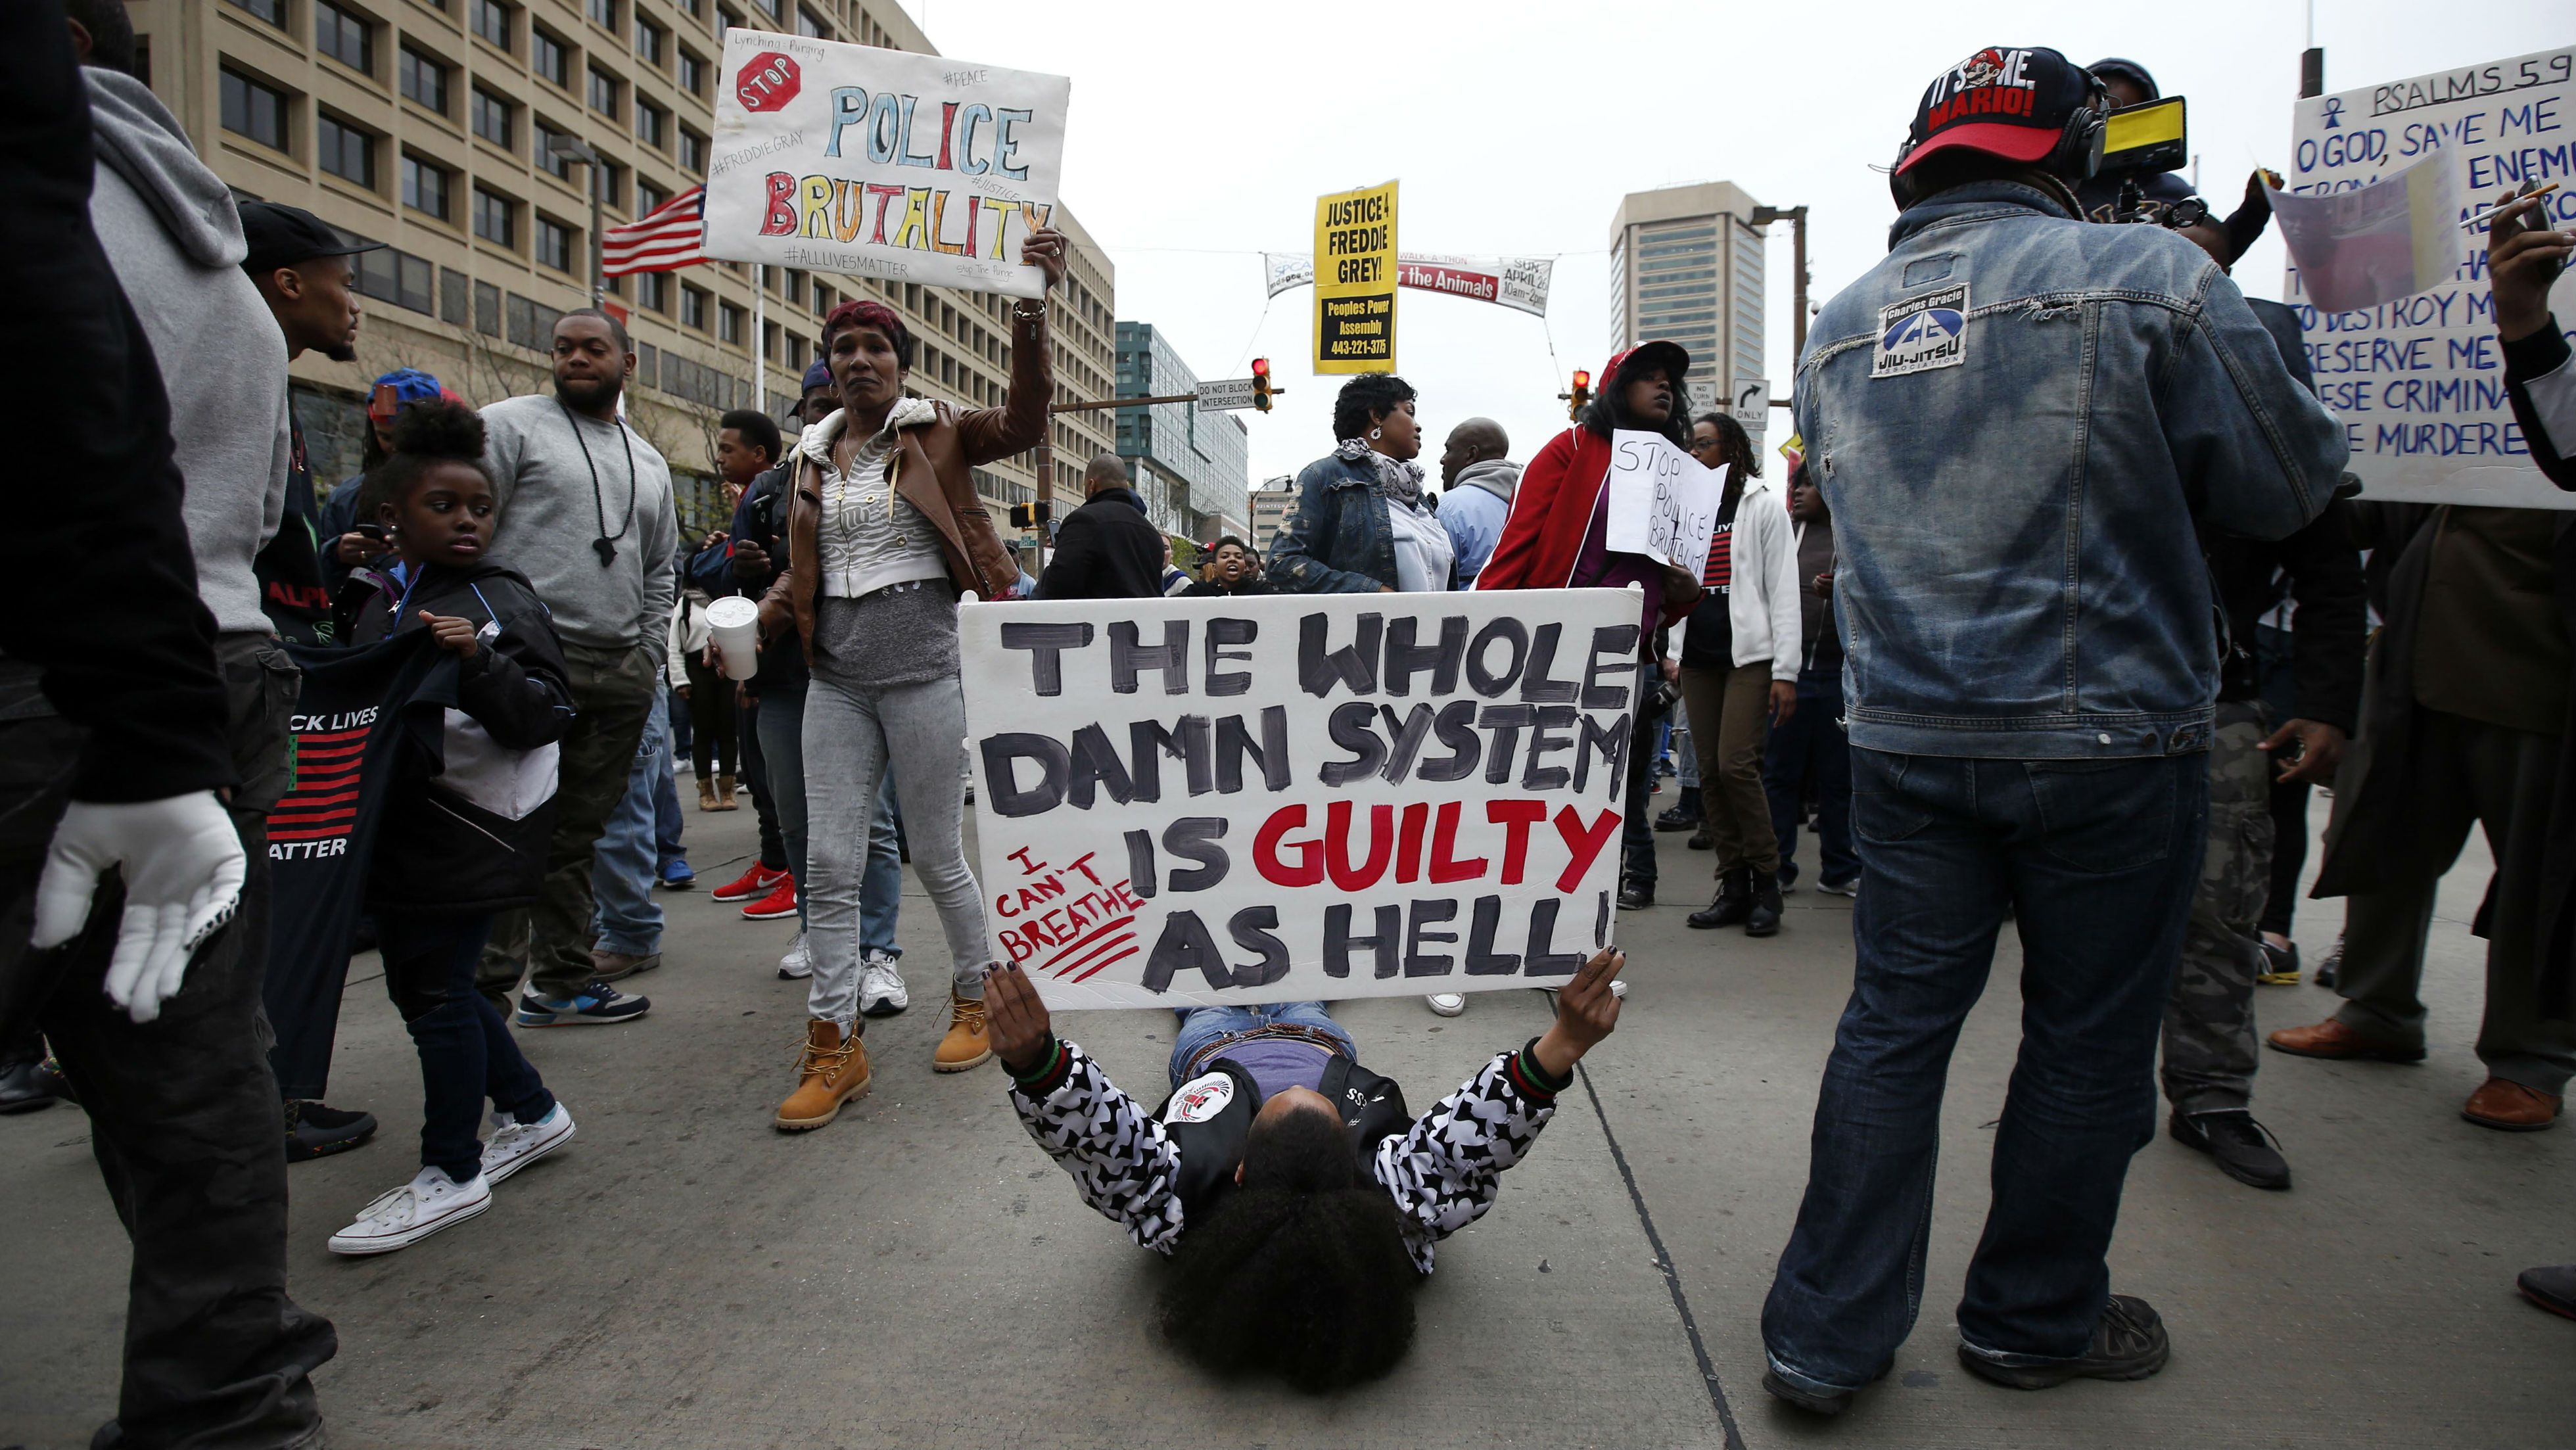 Marchers block the Pratt Street after a march to City Hall for Freddie Gray, Saturday, April 25, 2015 in Baltimore. Gray died from spinal injuries about a week after he was arrested and transported in a police van. (AP Photo/Alex Brandon)